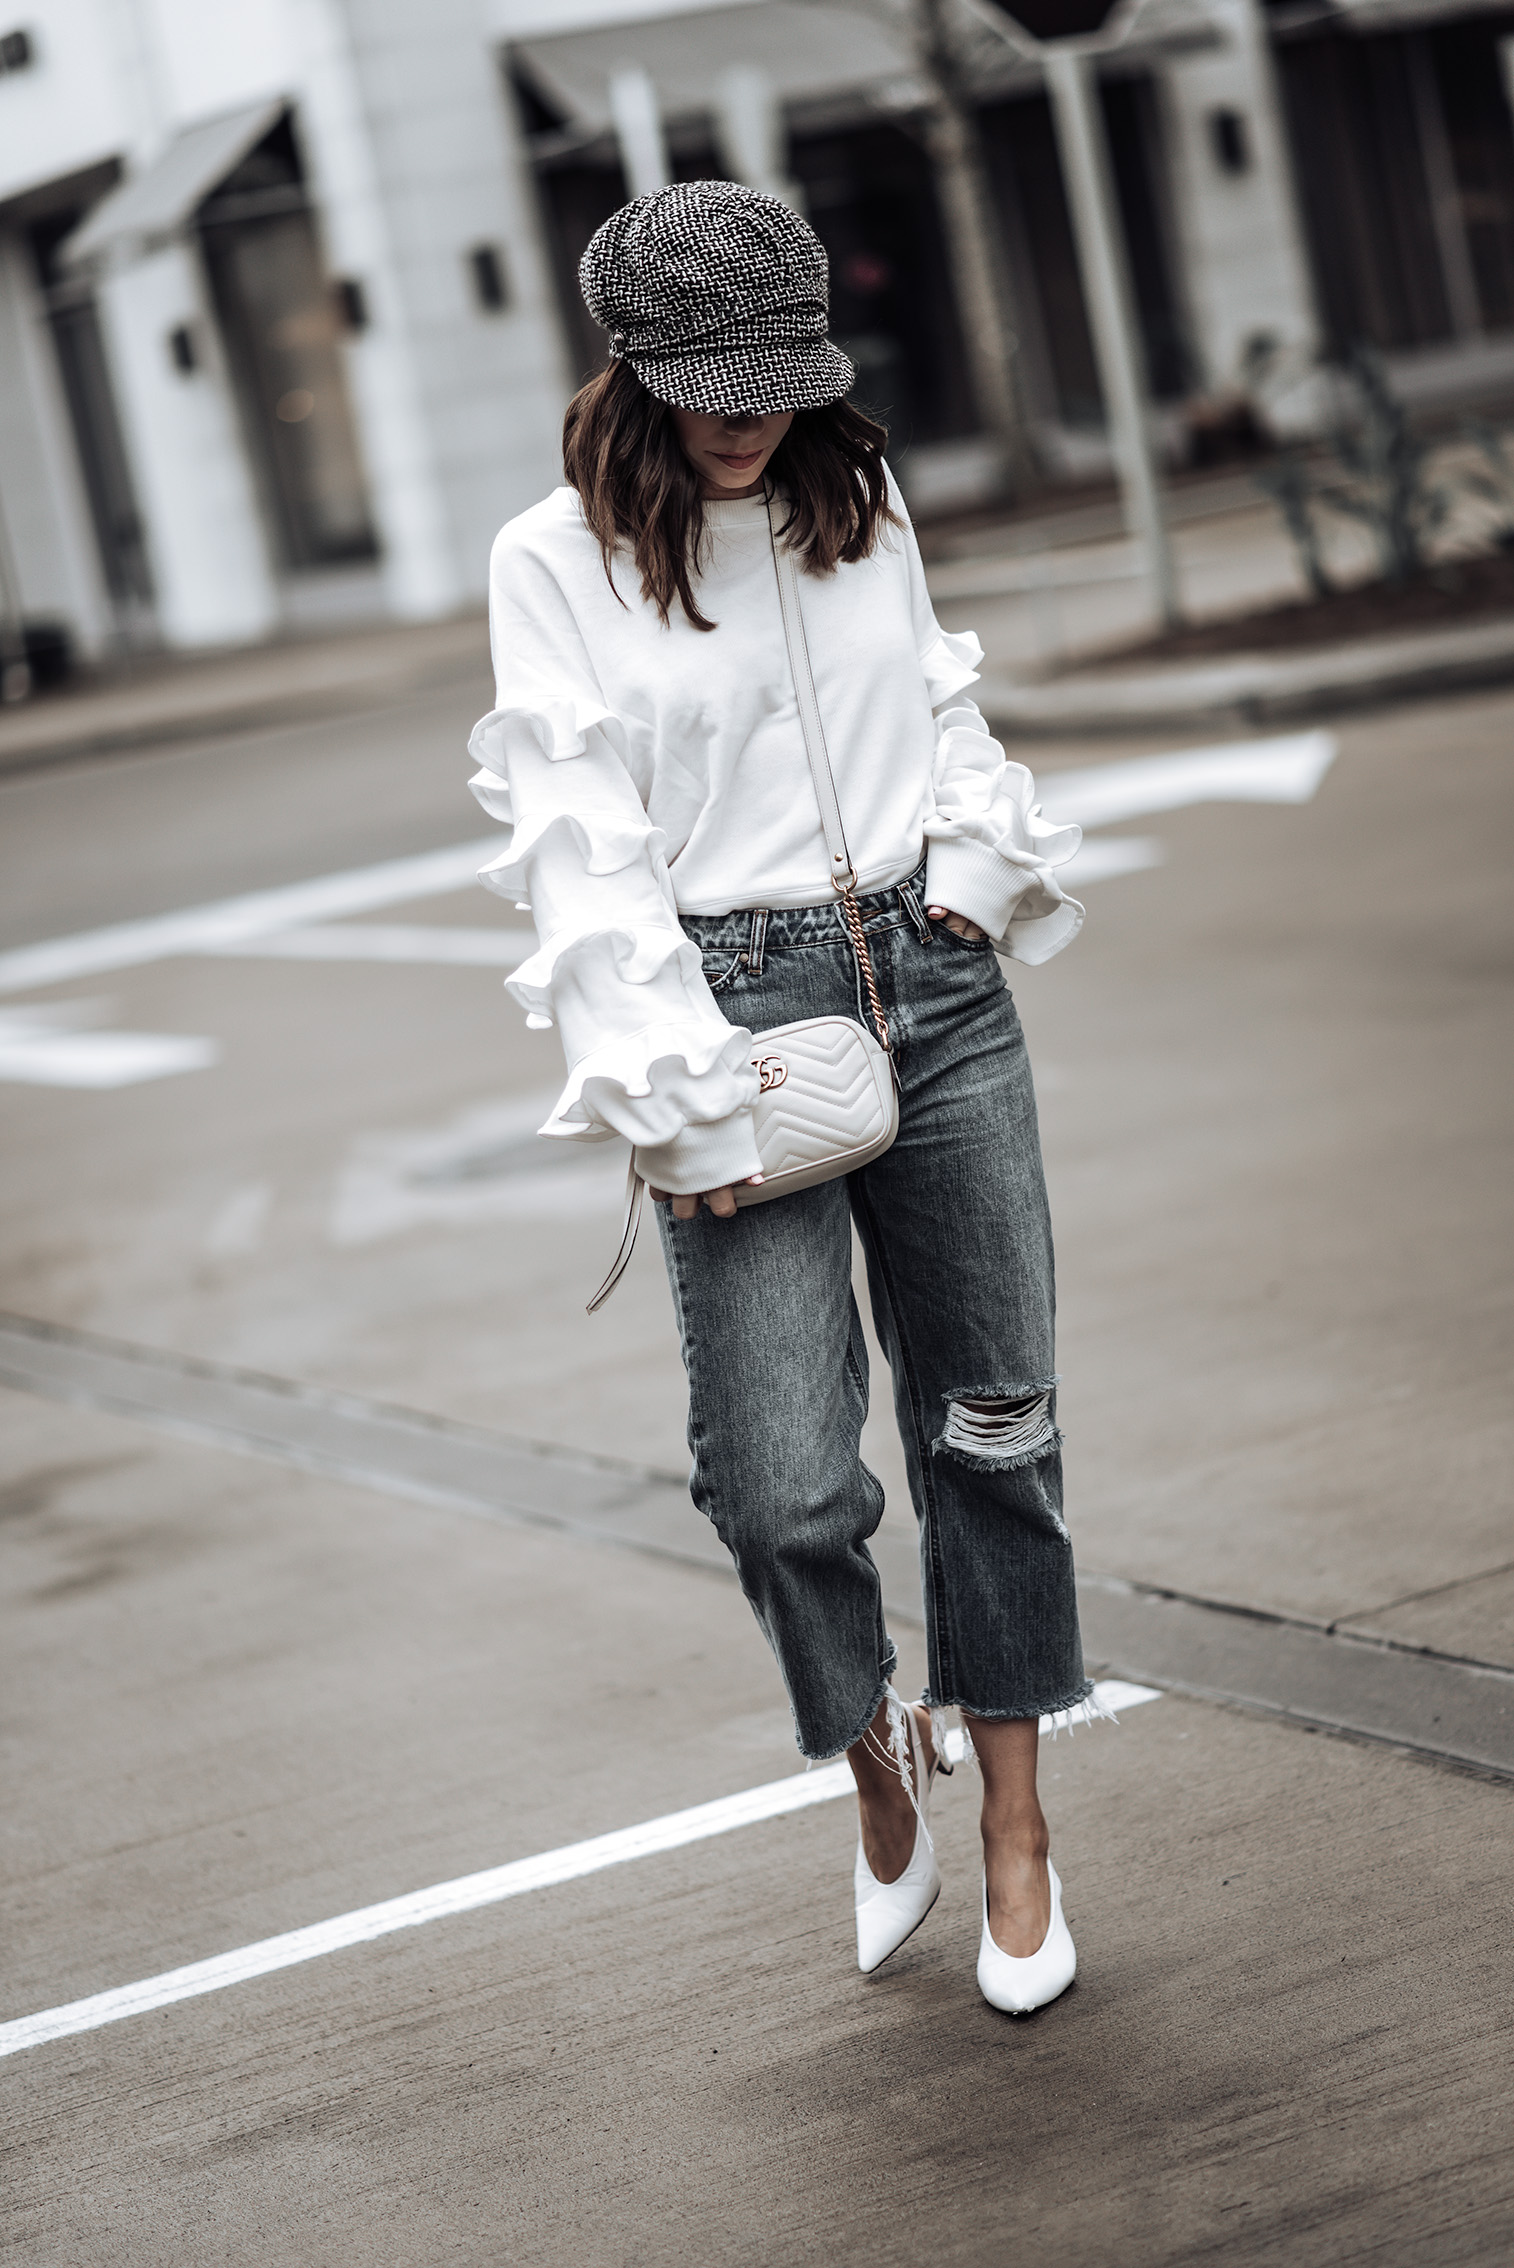 Ruffle details |Ruffle Sleeve Terry Pullover (similar) | Gucci GG Marmont bag | Jeans (similar) | Tweed Baker's Boy Cap | White Slingback Heels  #bakerhat #liketkit #slingbackheels #streetstyle